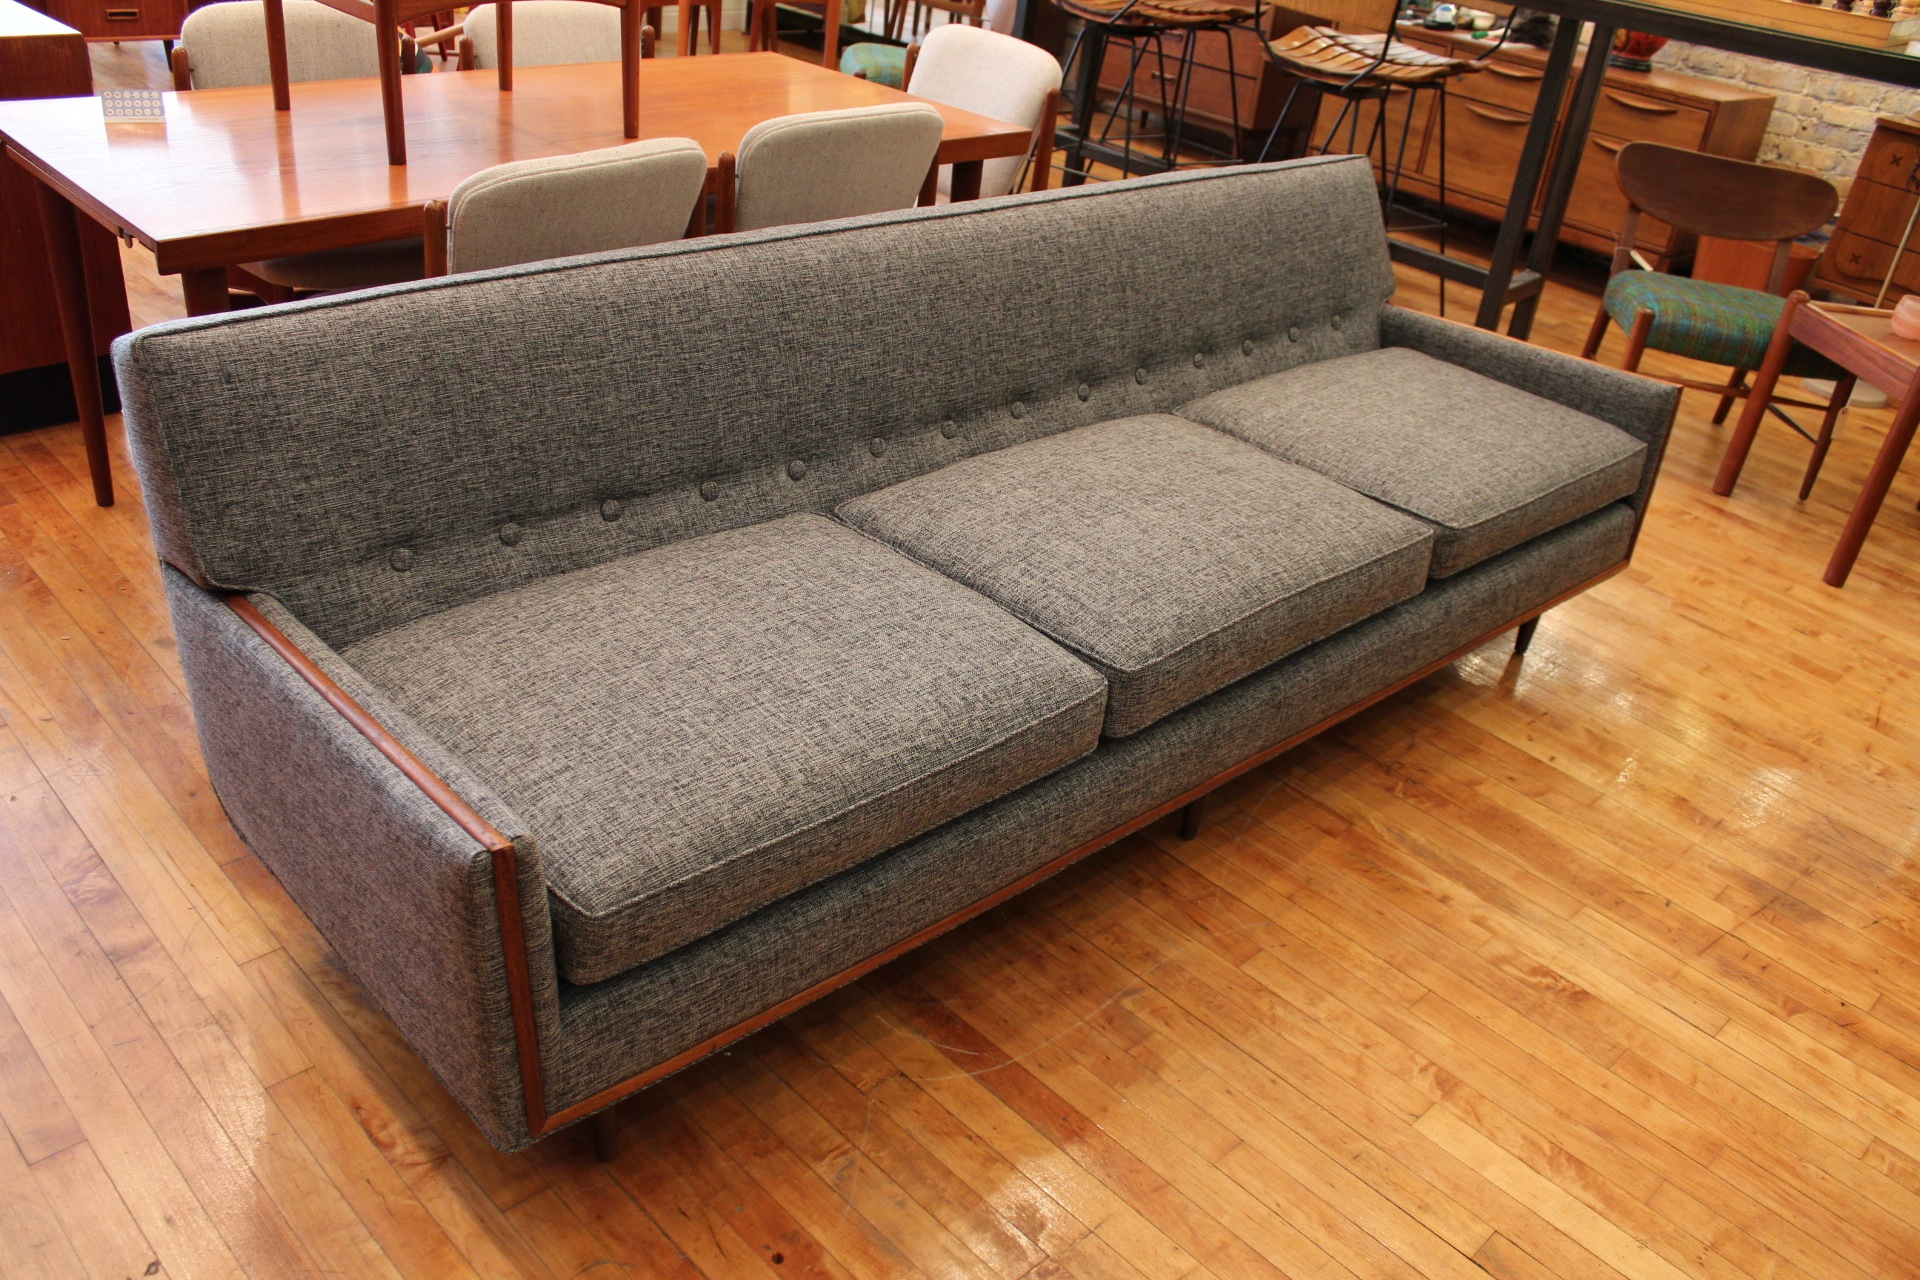 vintage mid century modern sofa vintage mid century modern furniture sectional sofa caring an. Black Bedroom Furniture Sets. Home Design Ideas